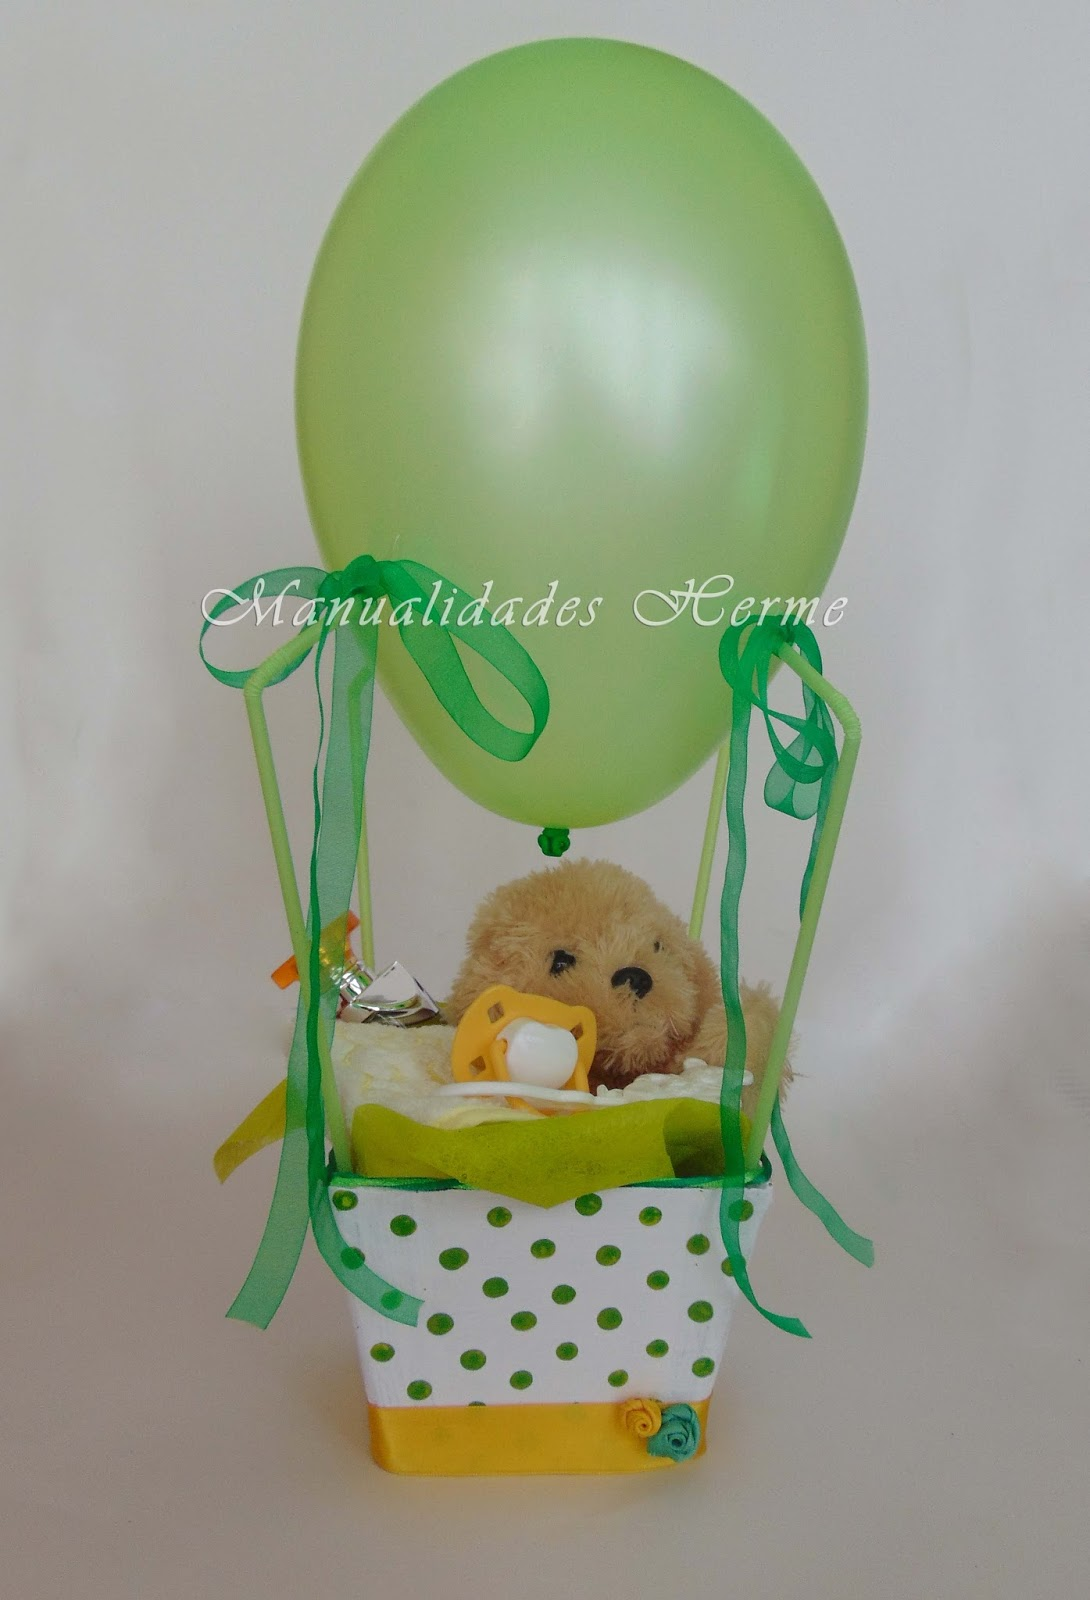 Manualidades herme diy globo para regalo baby shower for Manualidades decoracion bebe